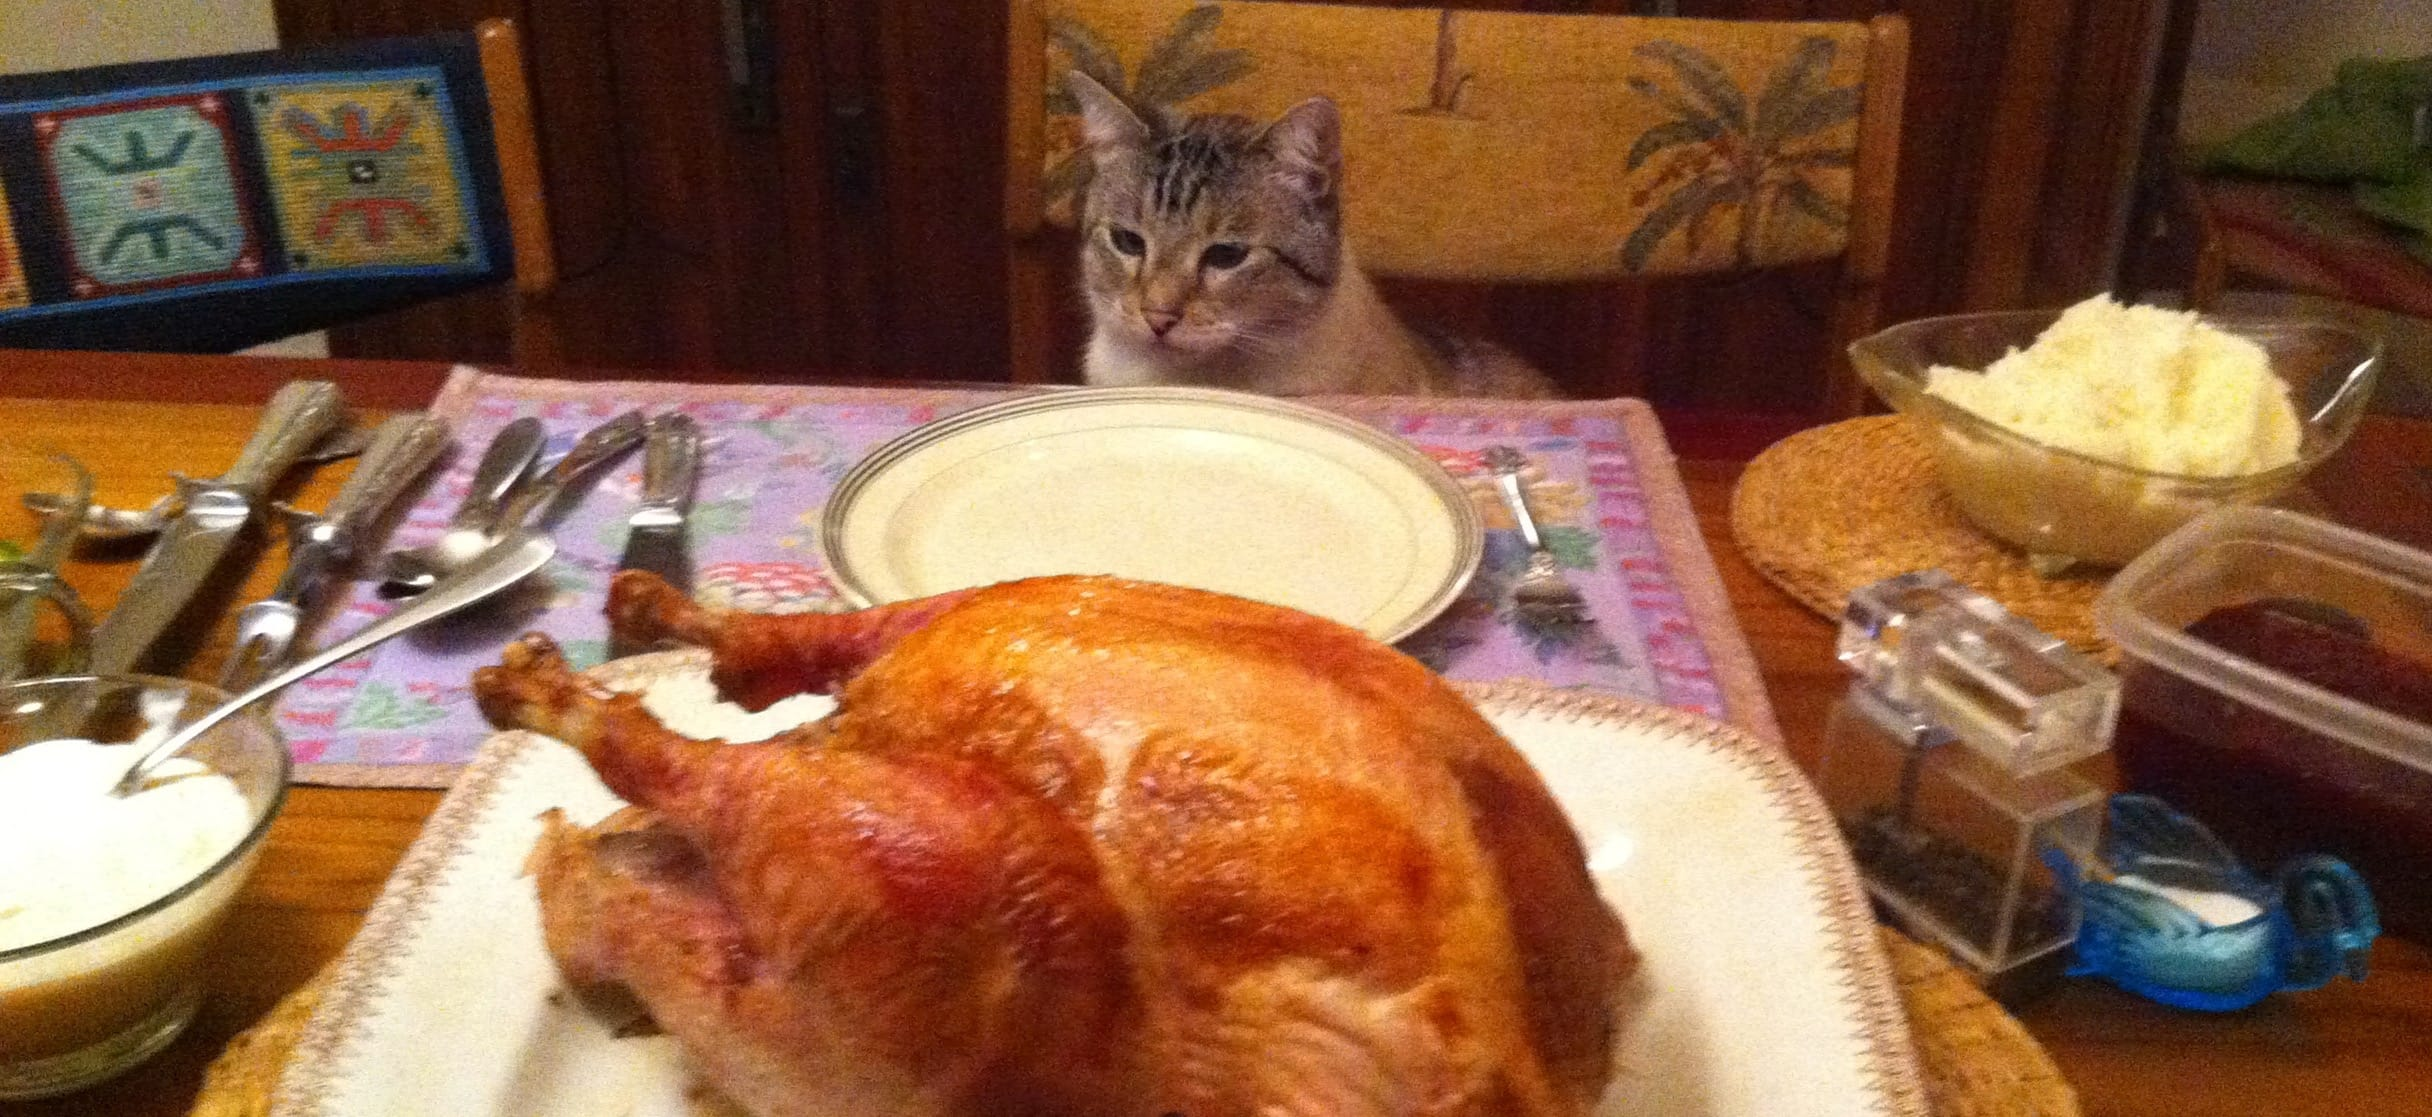 Ben, my cat, is thankful for the Thanksgiving feast.